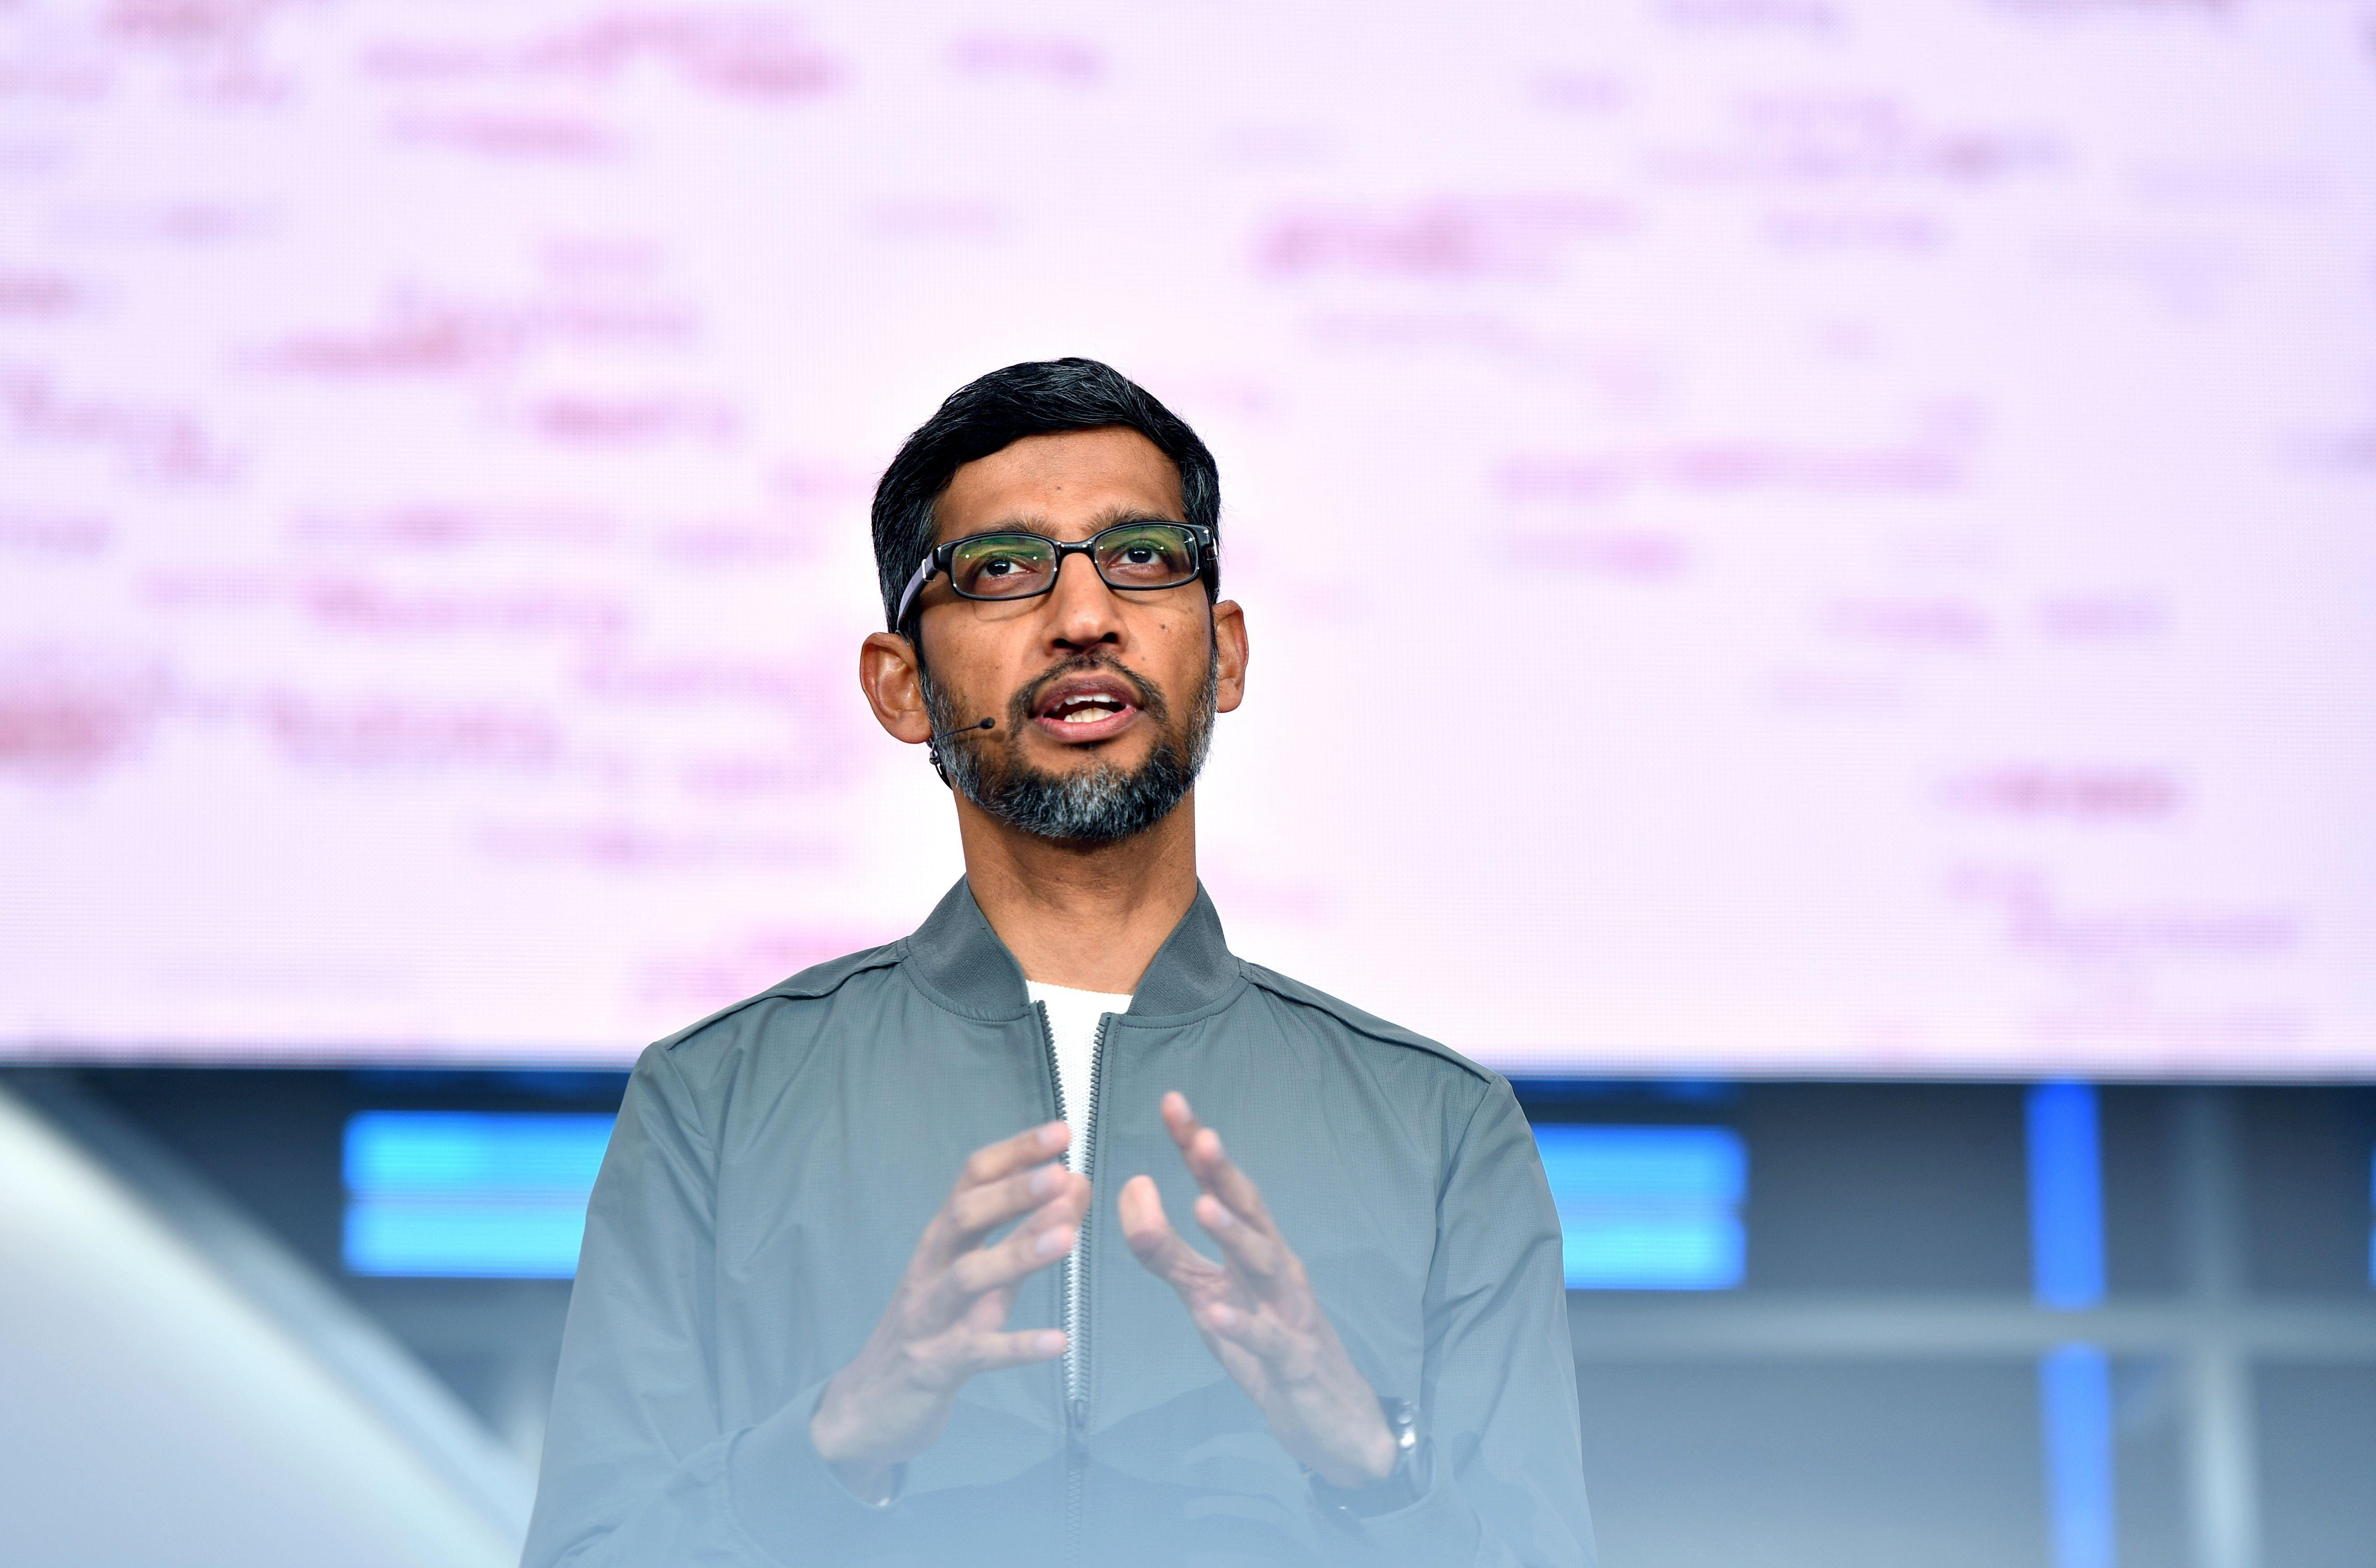 Google is leaning into security just in time